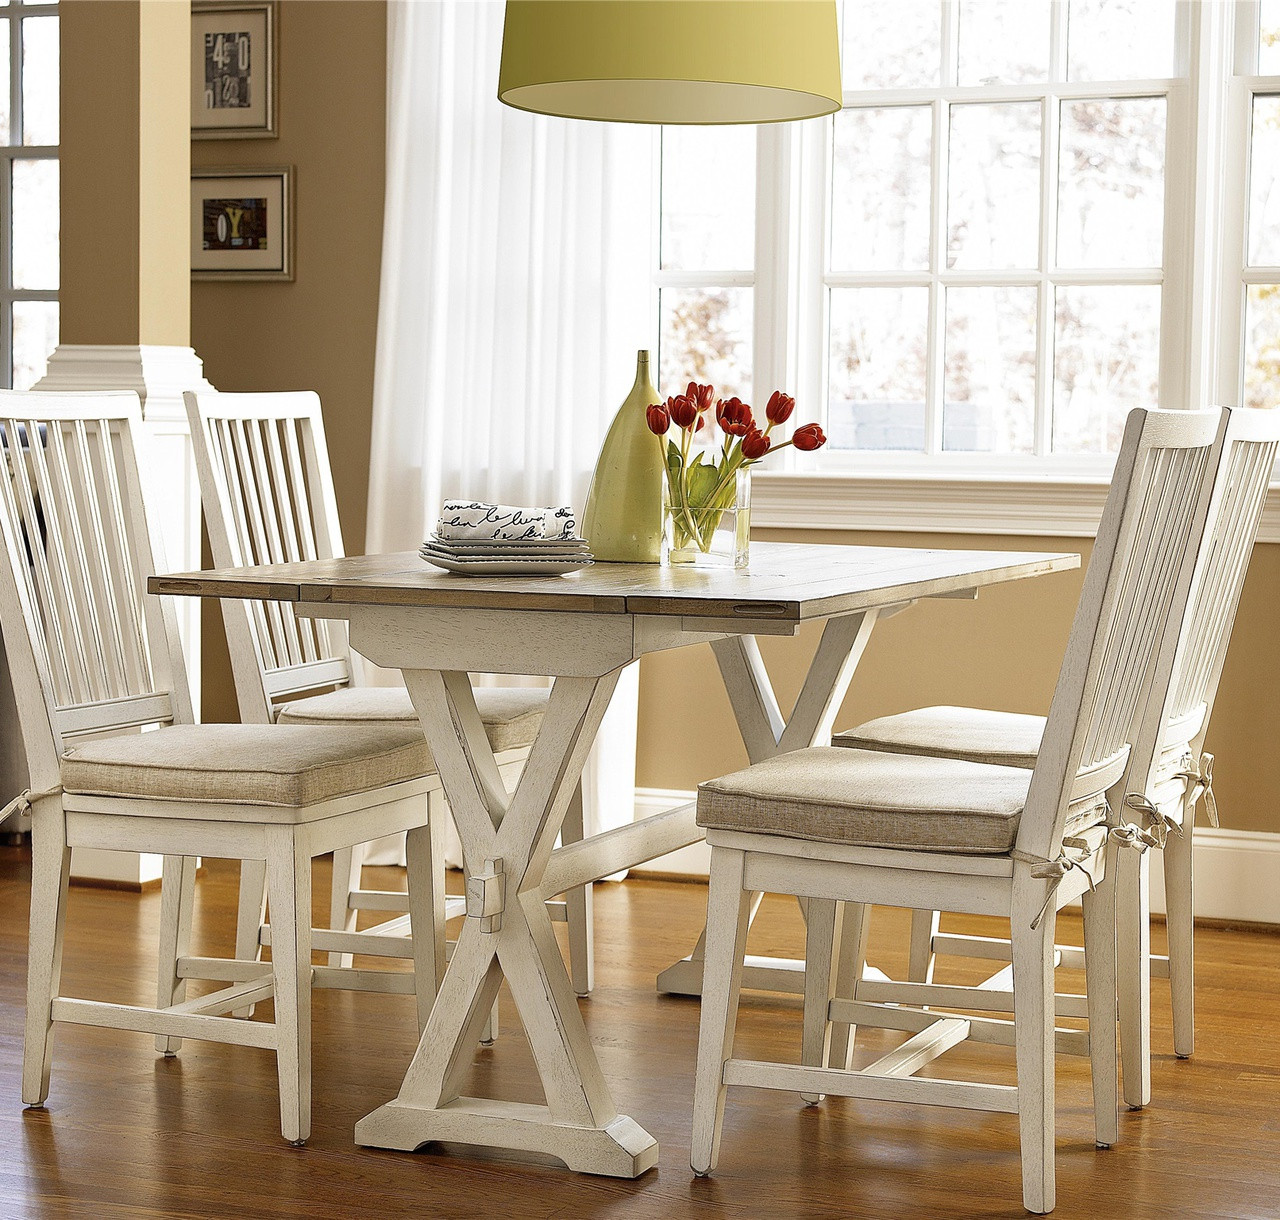 drop leaf white kitchen table towels coastal beach console zin home